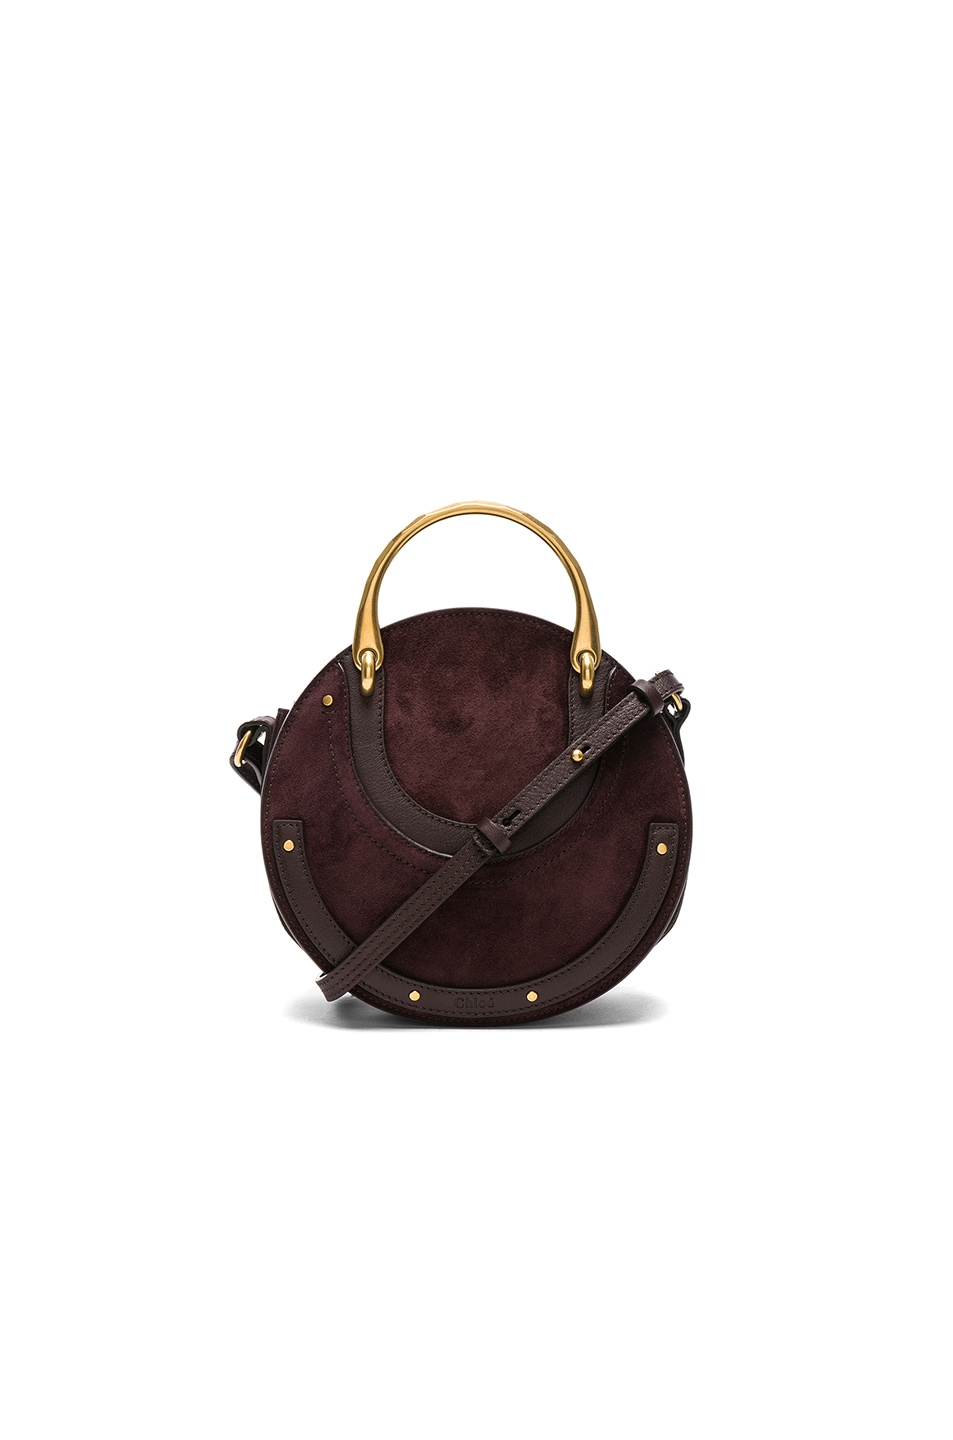 b4ee096689 Chloe Small Pixie Suede & Calfskin Double Handle Bag in Carbon ...